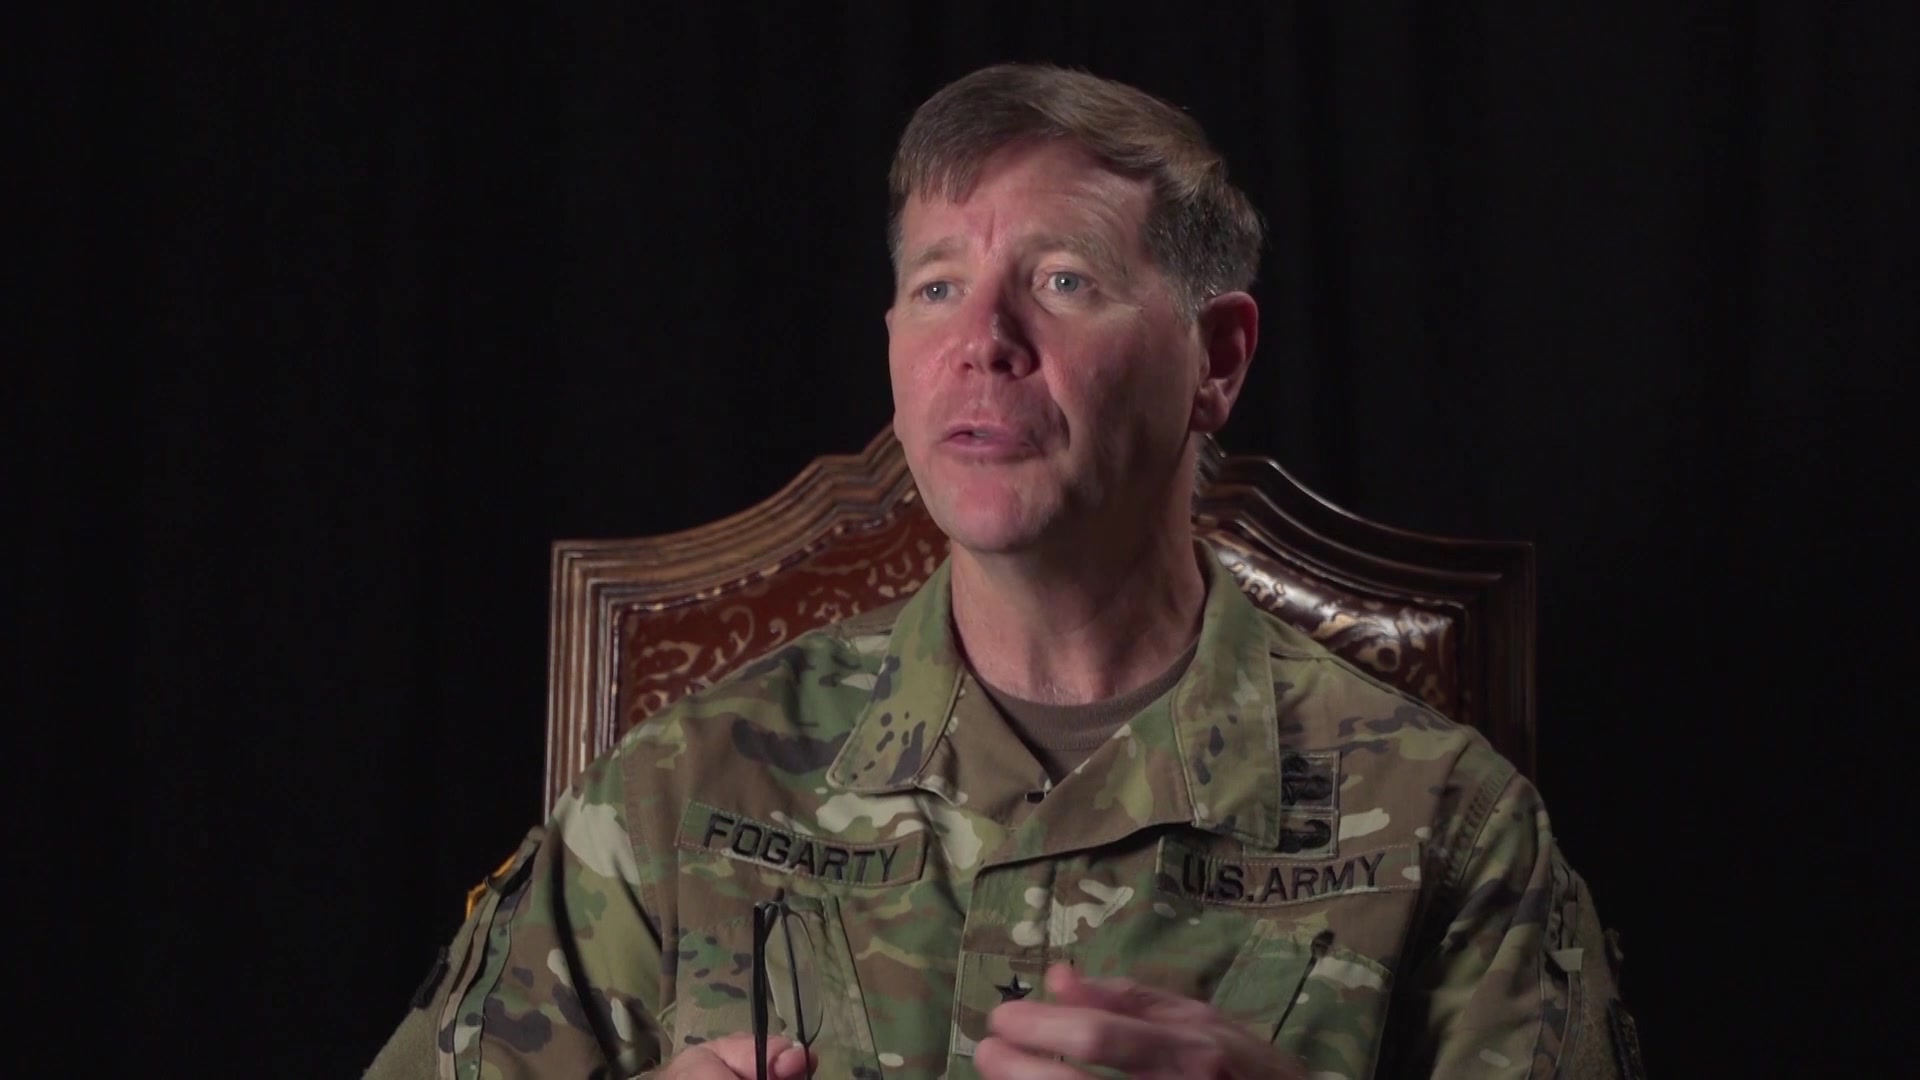 Senior Leaders meet to discuss National Guard's role in cyber warfare at Cyber Shield 18 video